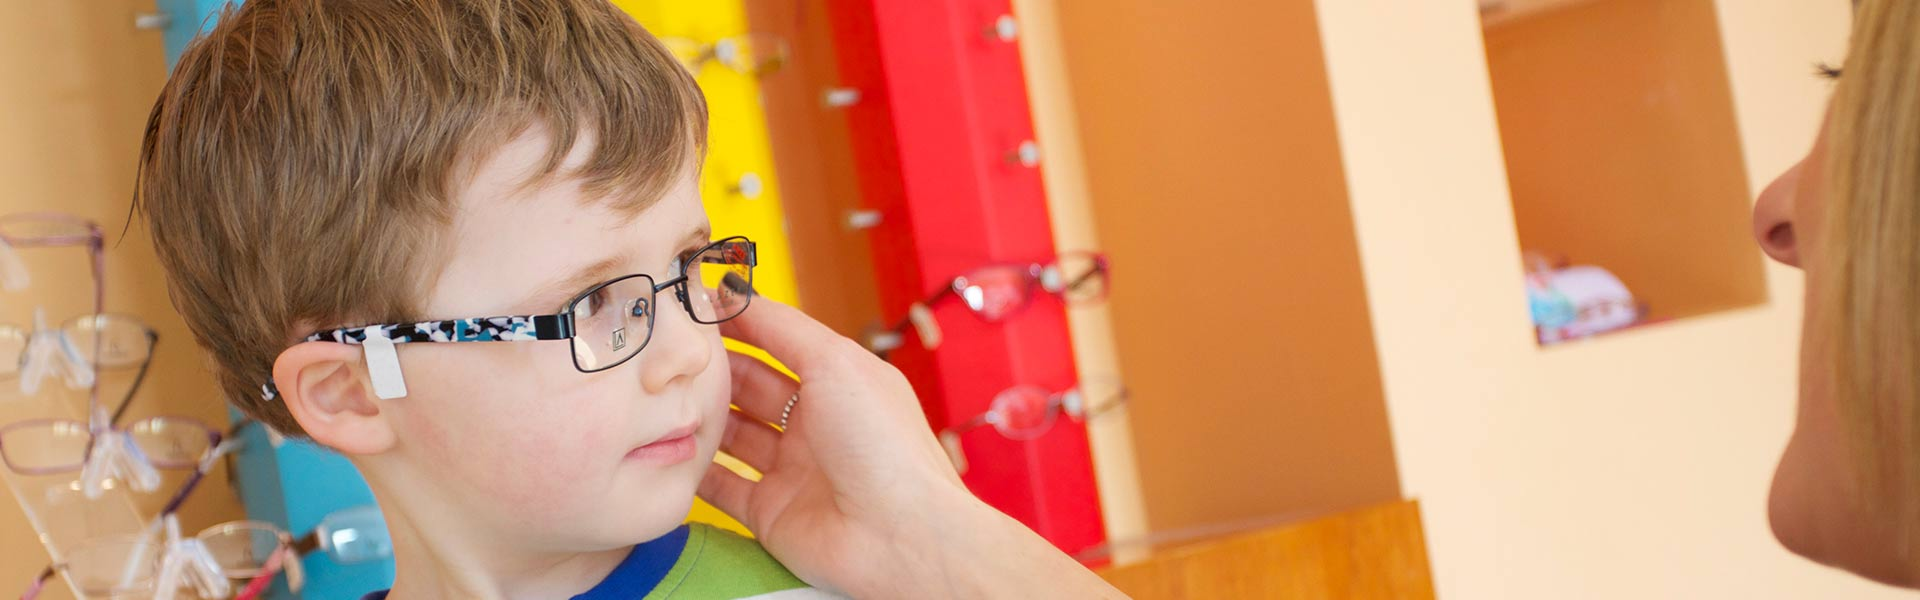 8981bf02a25c childrens-eyecare-frames